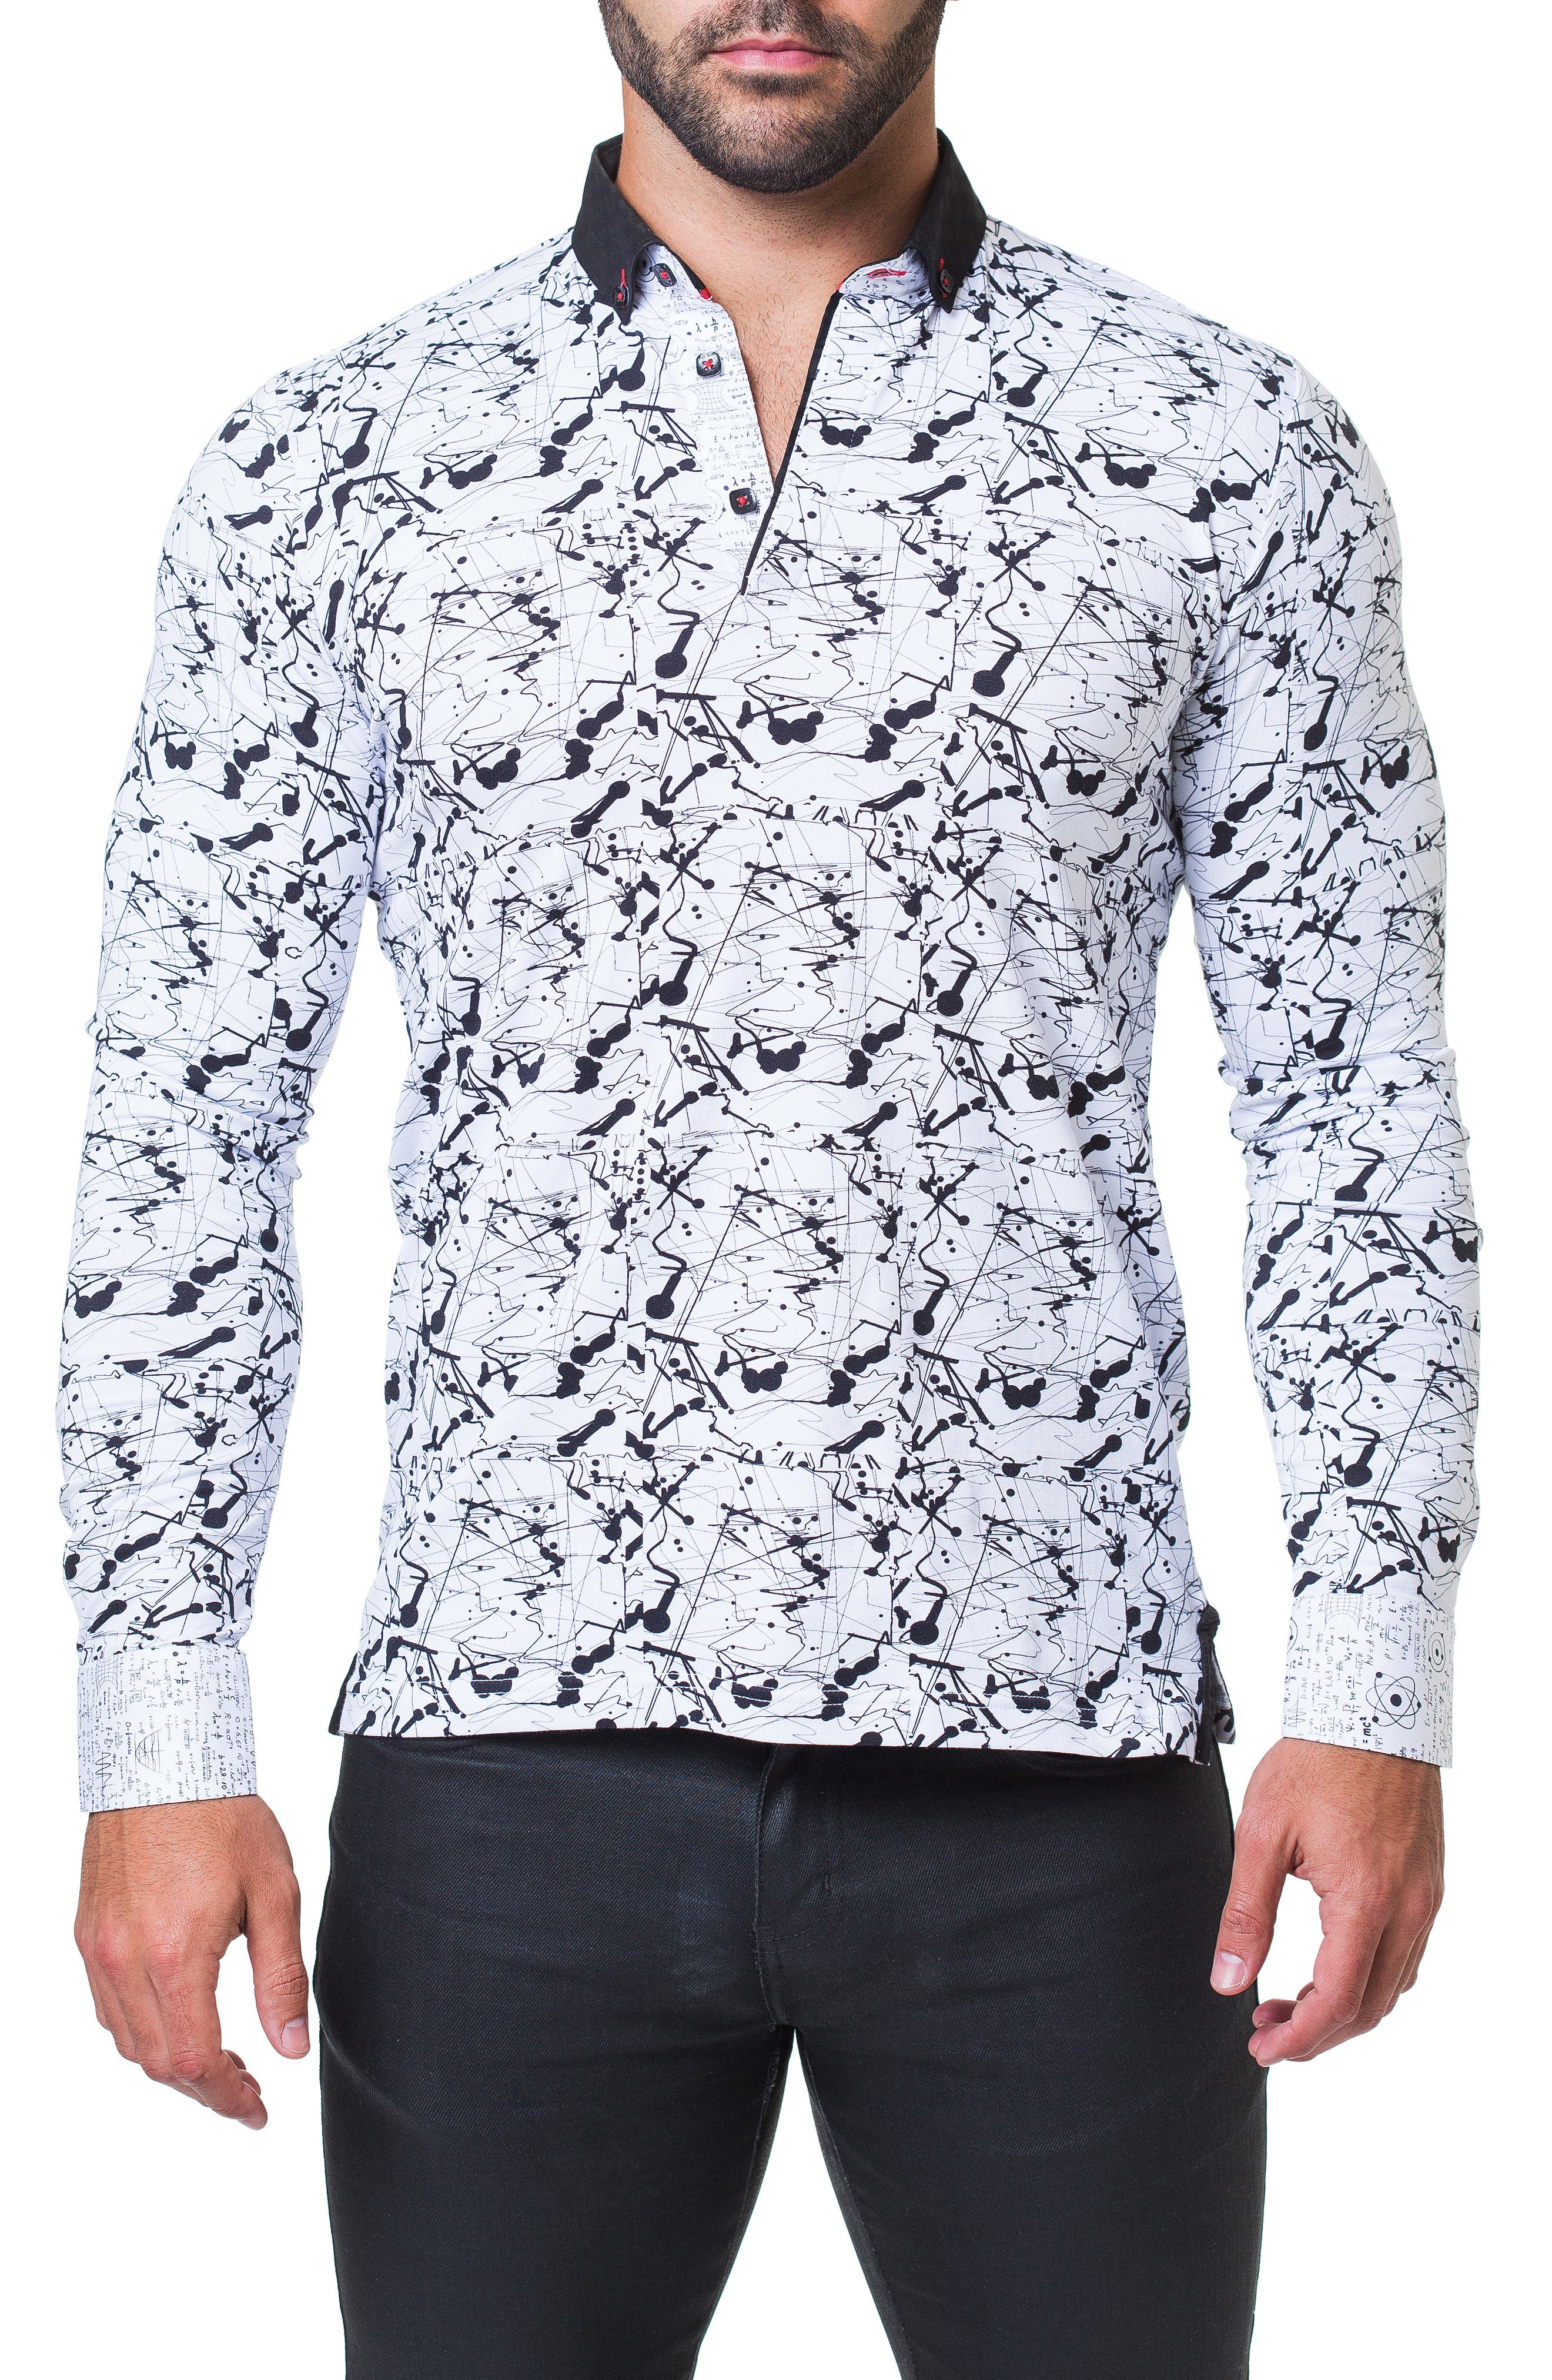 Newton Haring Trim Fit Print Long Sleeve Polo,                         Main,                         color, WHITE